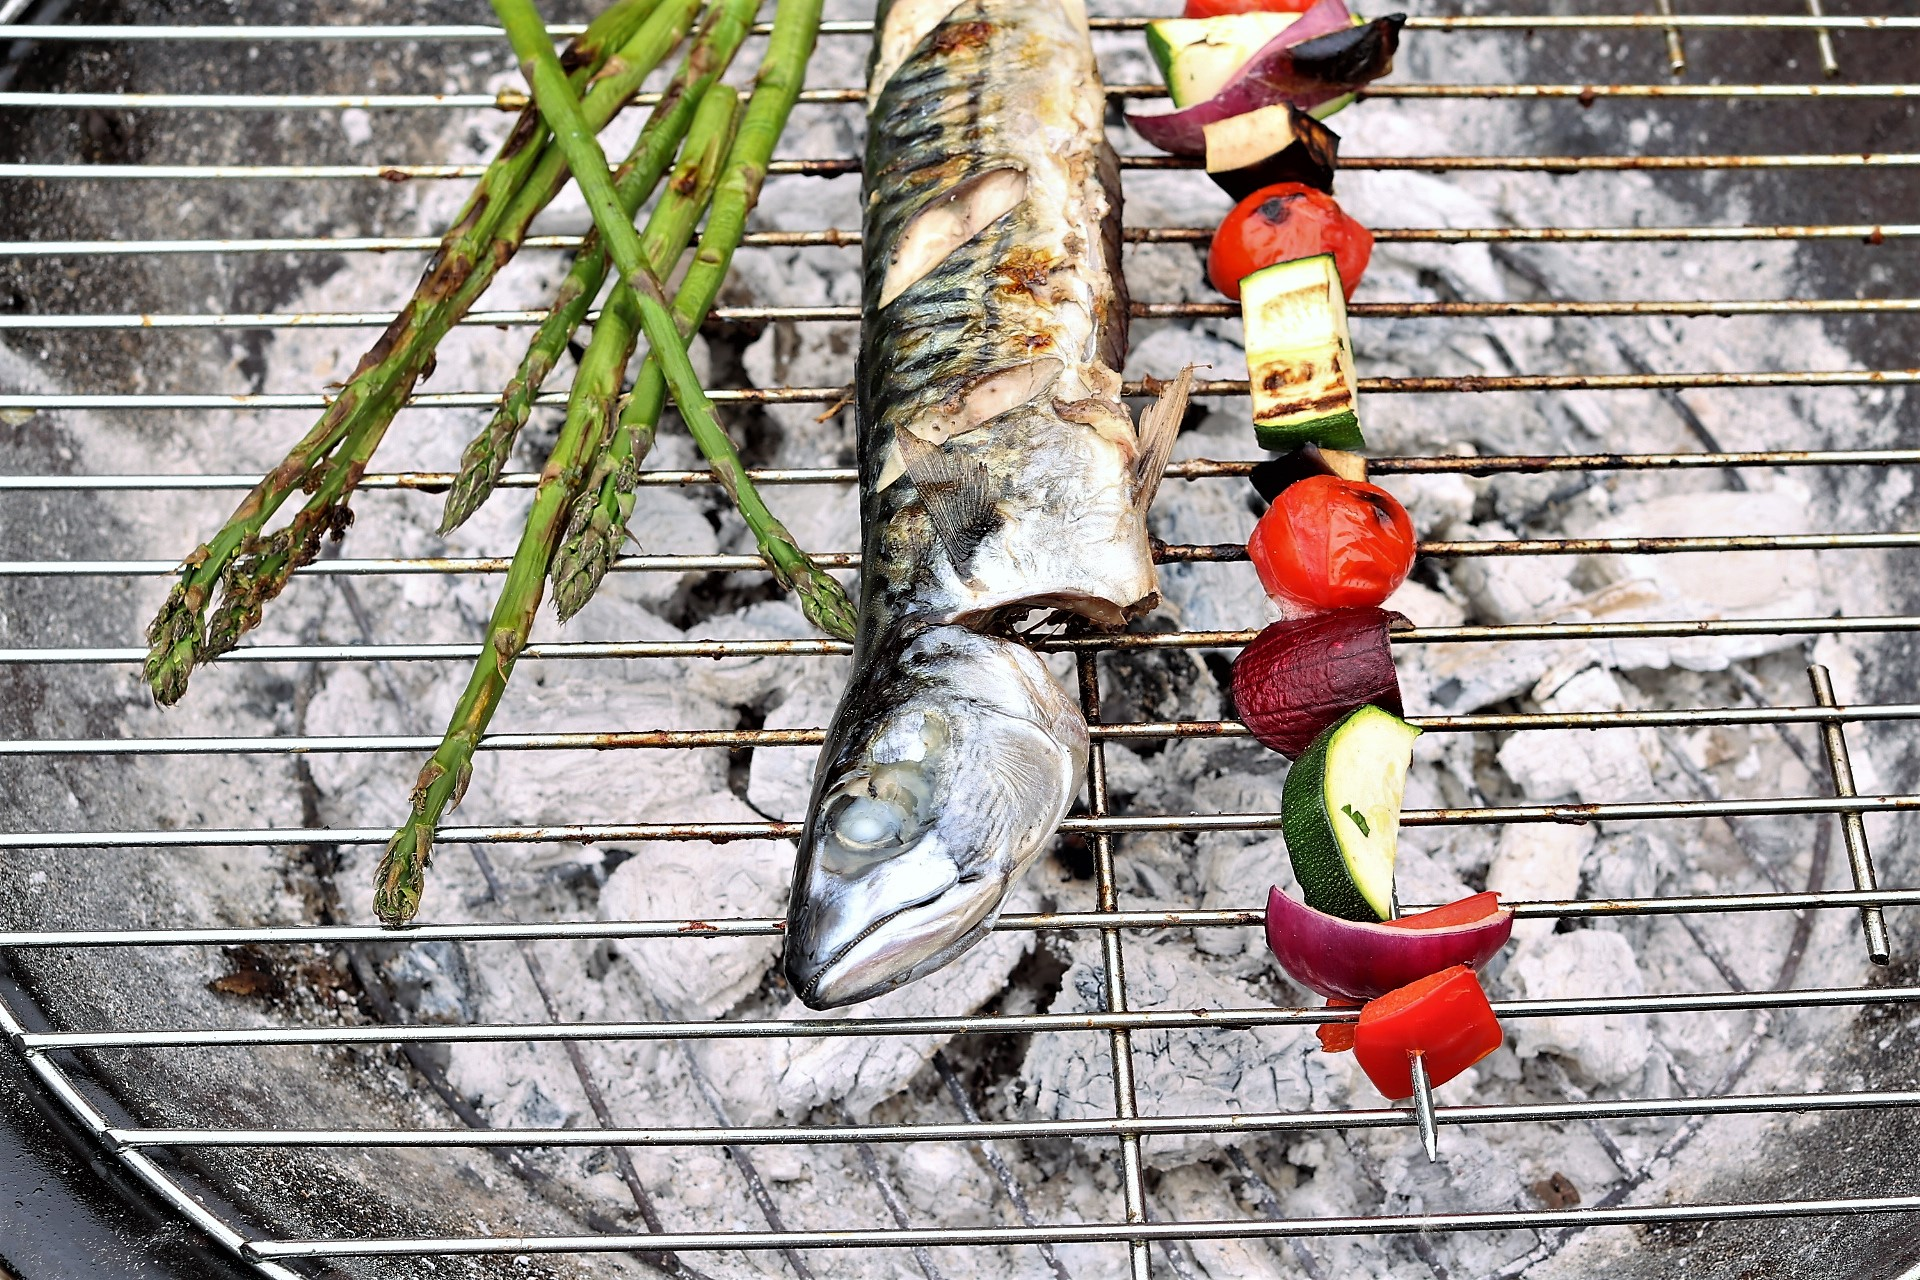 Simple Whole Barbecued Mackerel